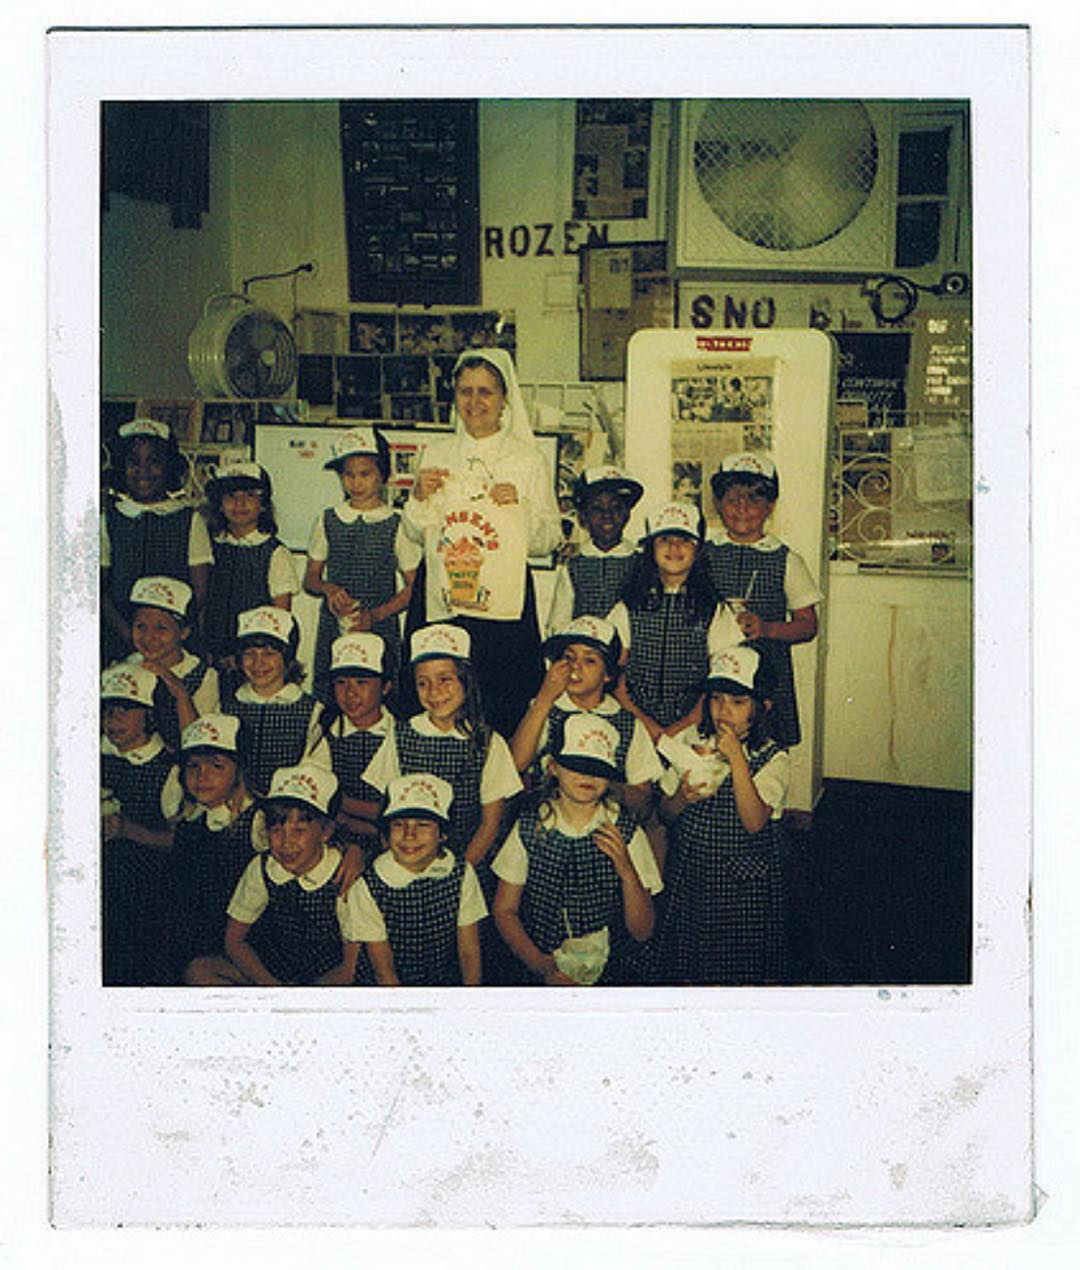 Wishing everyone a terrific start to their school year! Ashley & Allison Hansen's second grade class at @ursulinenola made a special trip to the stand, in this to 1980